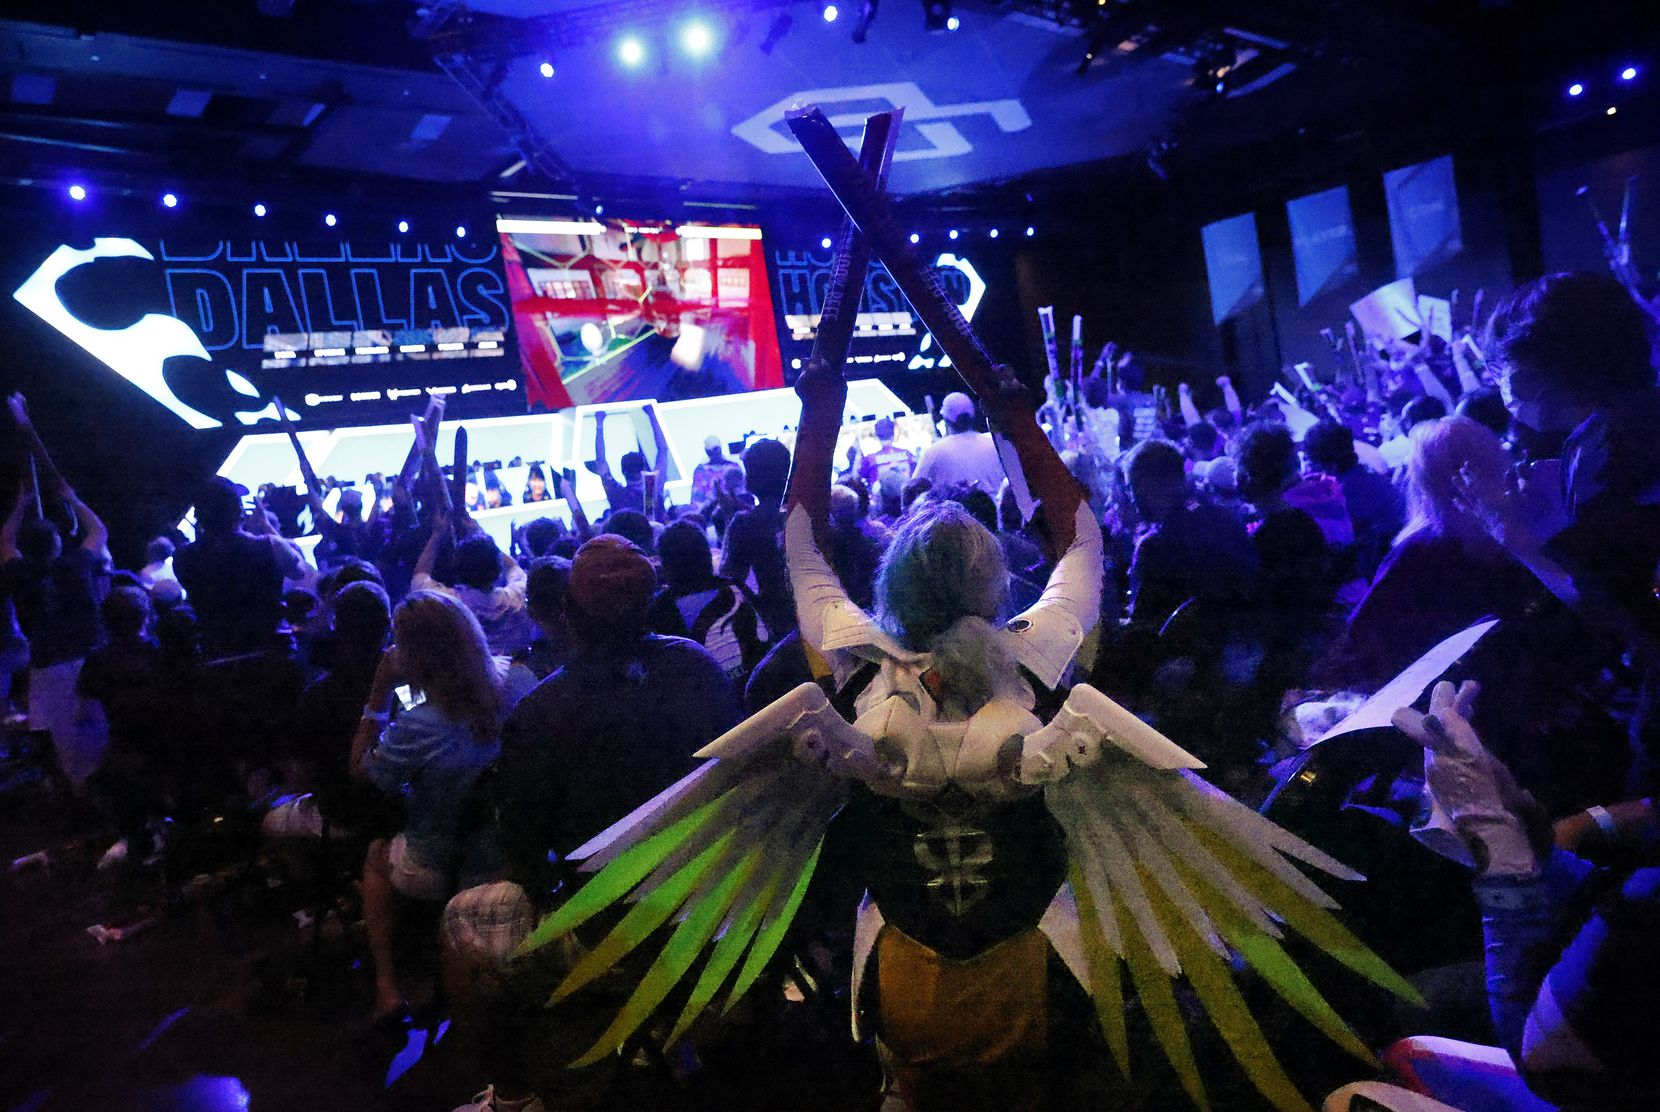 Dallas Fuel fan Hope Hopkins of Alvarado, Texas came dressed as Mercy, a character from Overwatch League. She another fans cheered as the Fuel won a map during their match against the Houston Outlaws at Esports Stadium Arlington Friday, July 9, 2021. Dallas Fuel defeated Houston in The Battle for Texas, 3-0. It was the first in-person live competition for fans in over a year. Houston competed from their hometown. (Tom Fox/The Dallas Morning News)